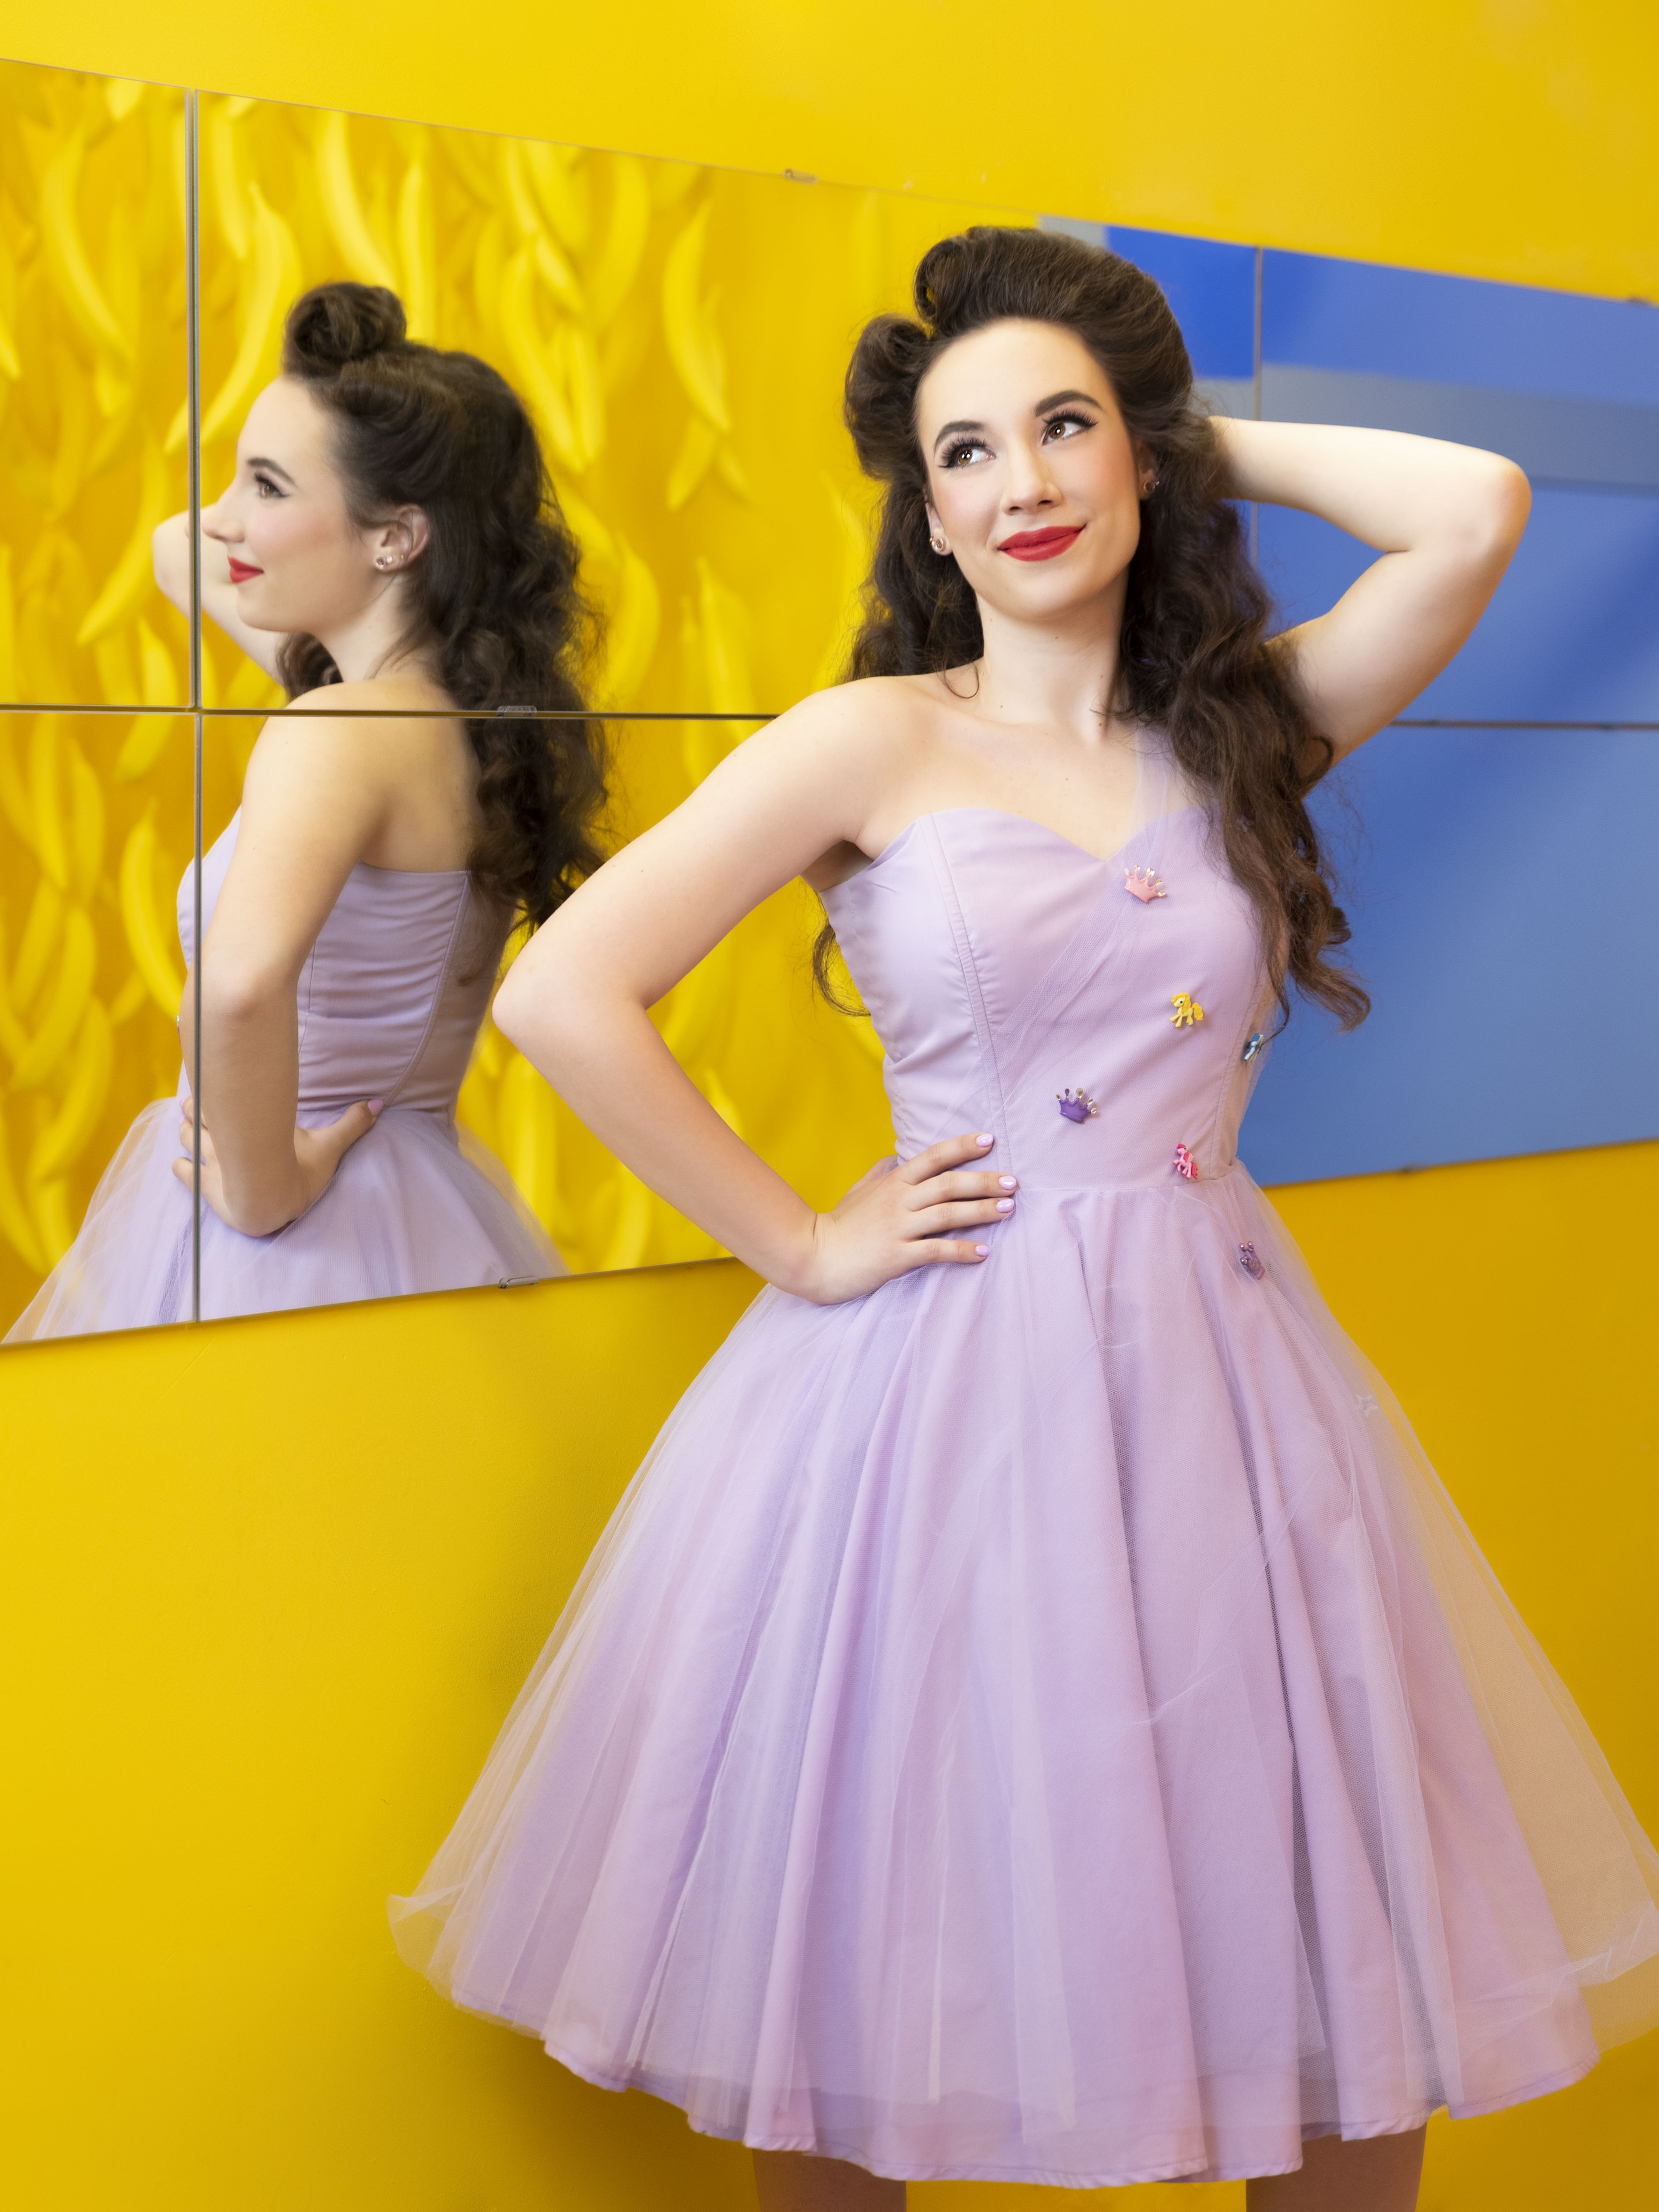 I Love LUcy style retro pin up dress by pinkbubblesclothing